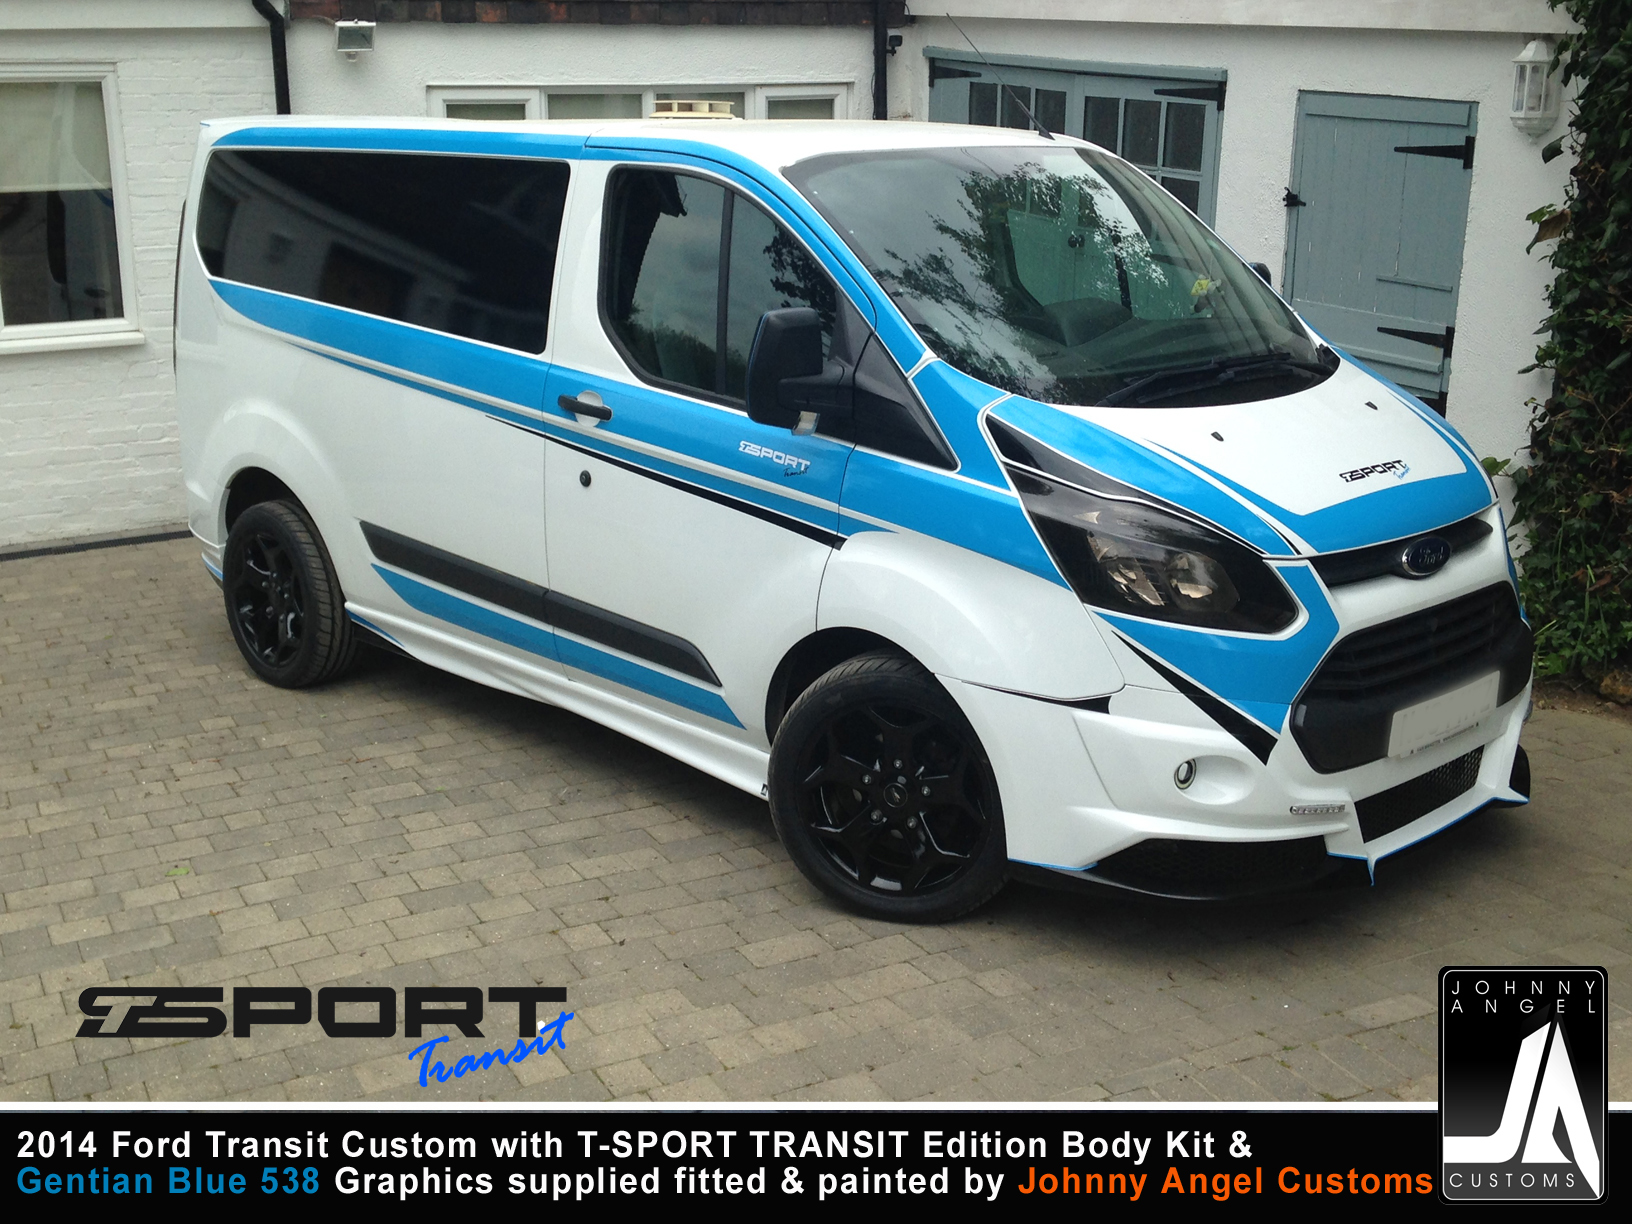 2014 Ford Transit Custom with T-SPORT TRANSIT Edition Body Kit & Graphics Light blue By Johnny Angel